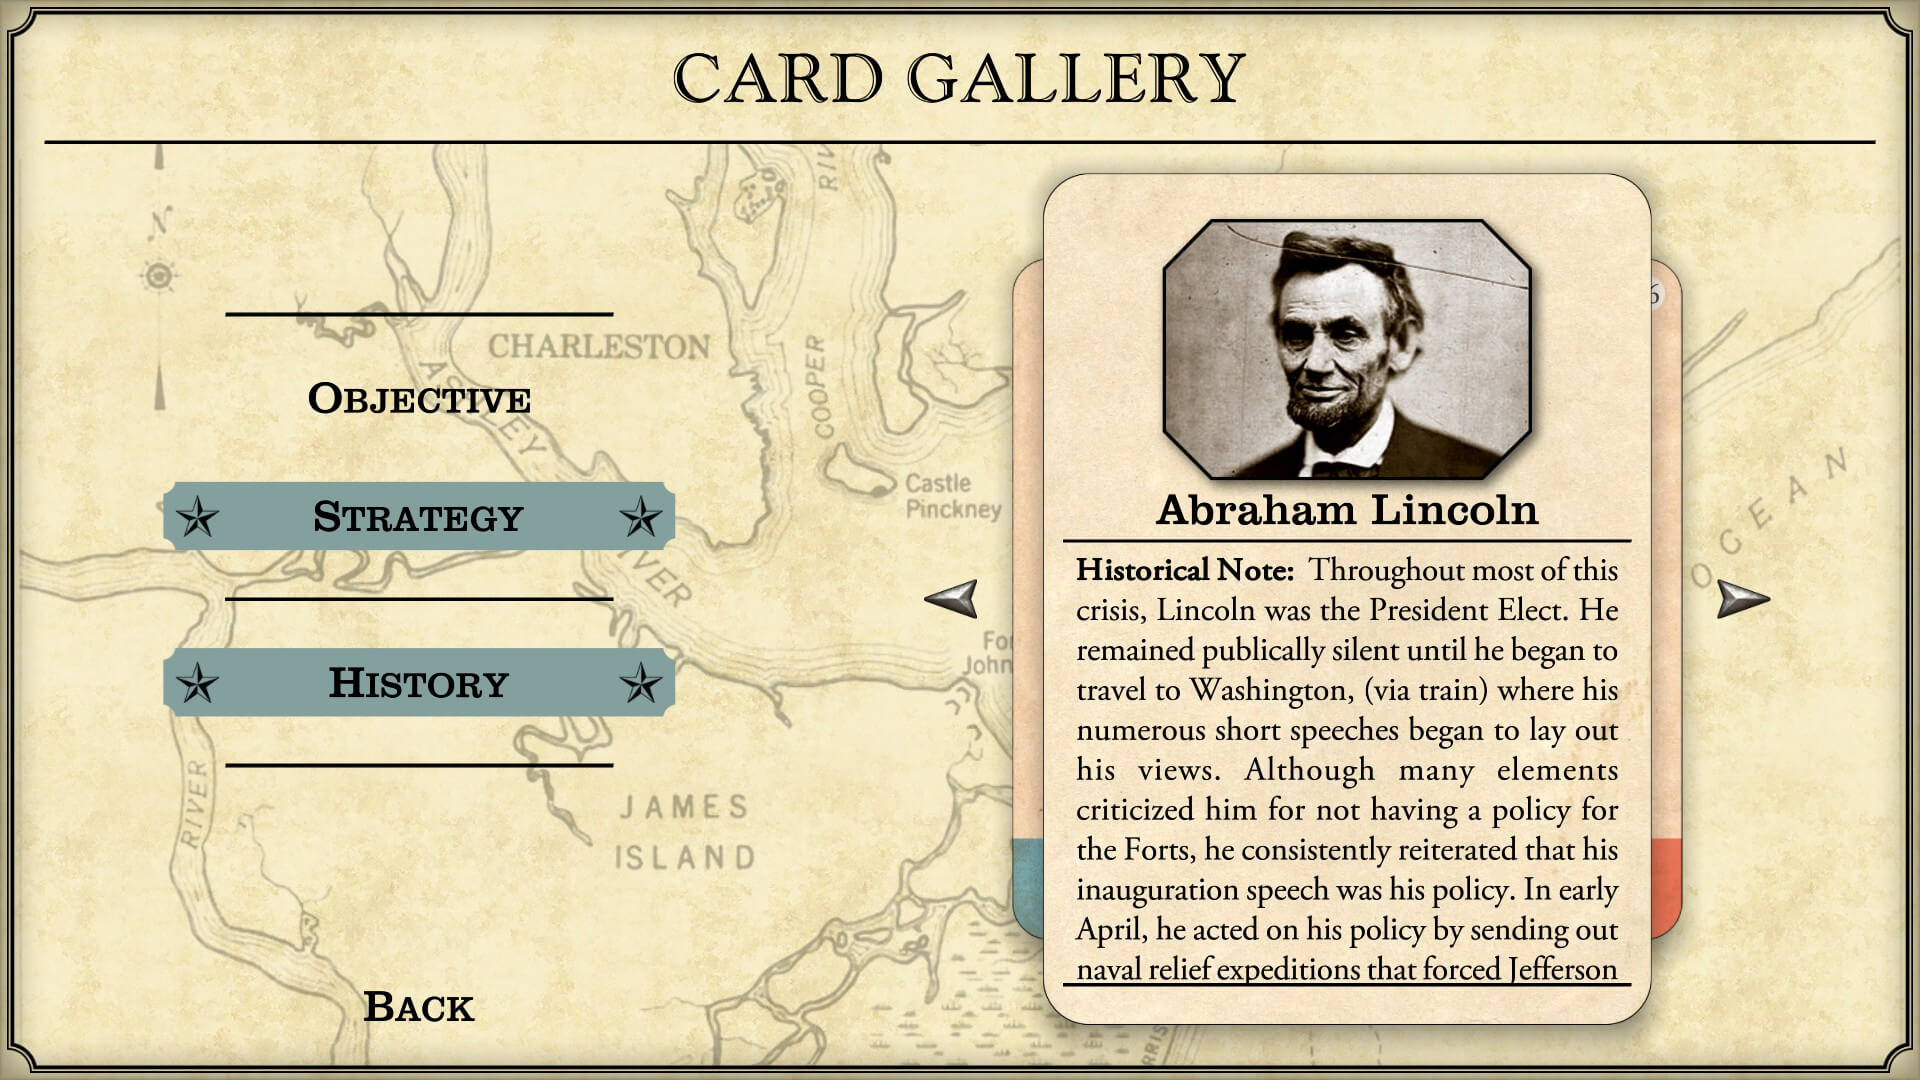 Fort Sumter Card Gallery